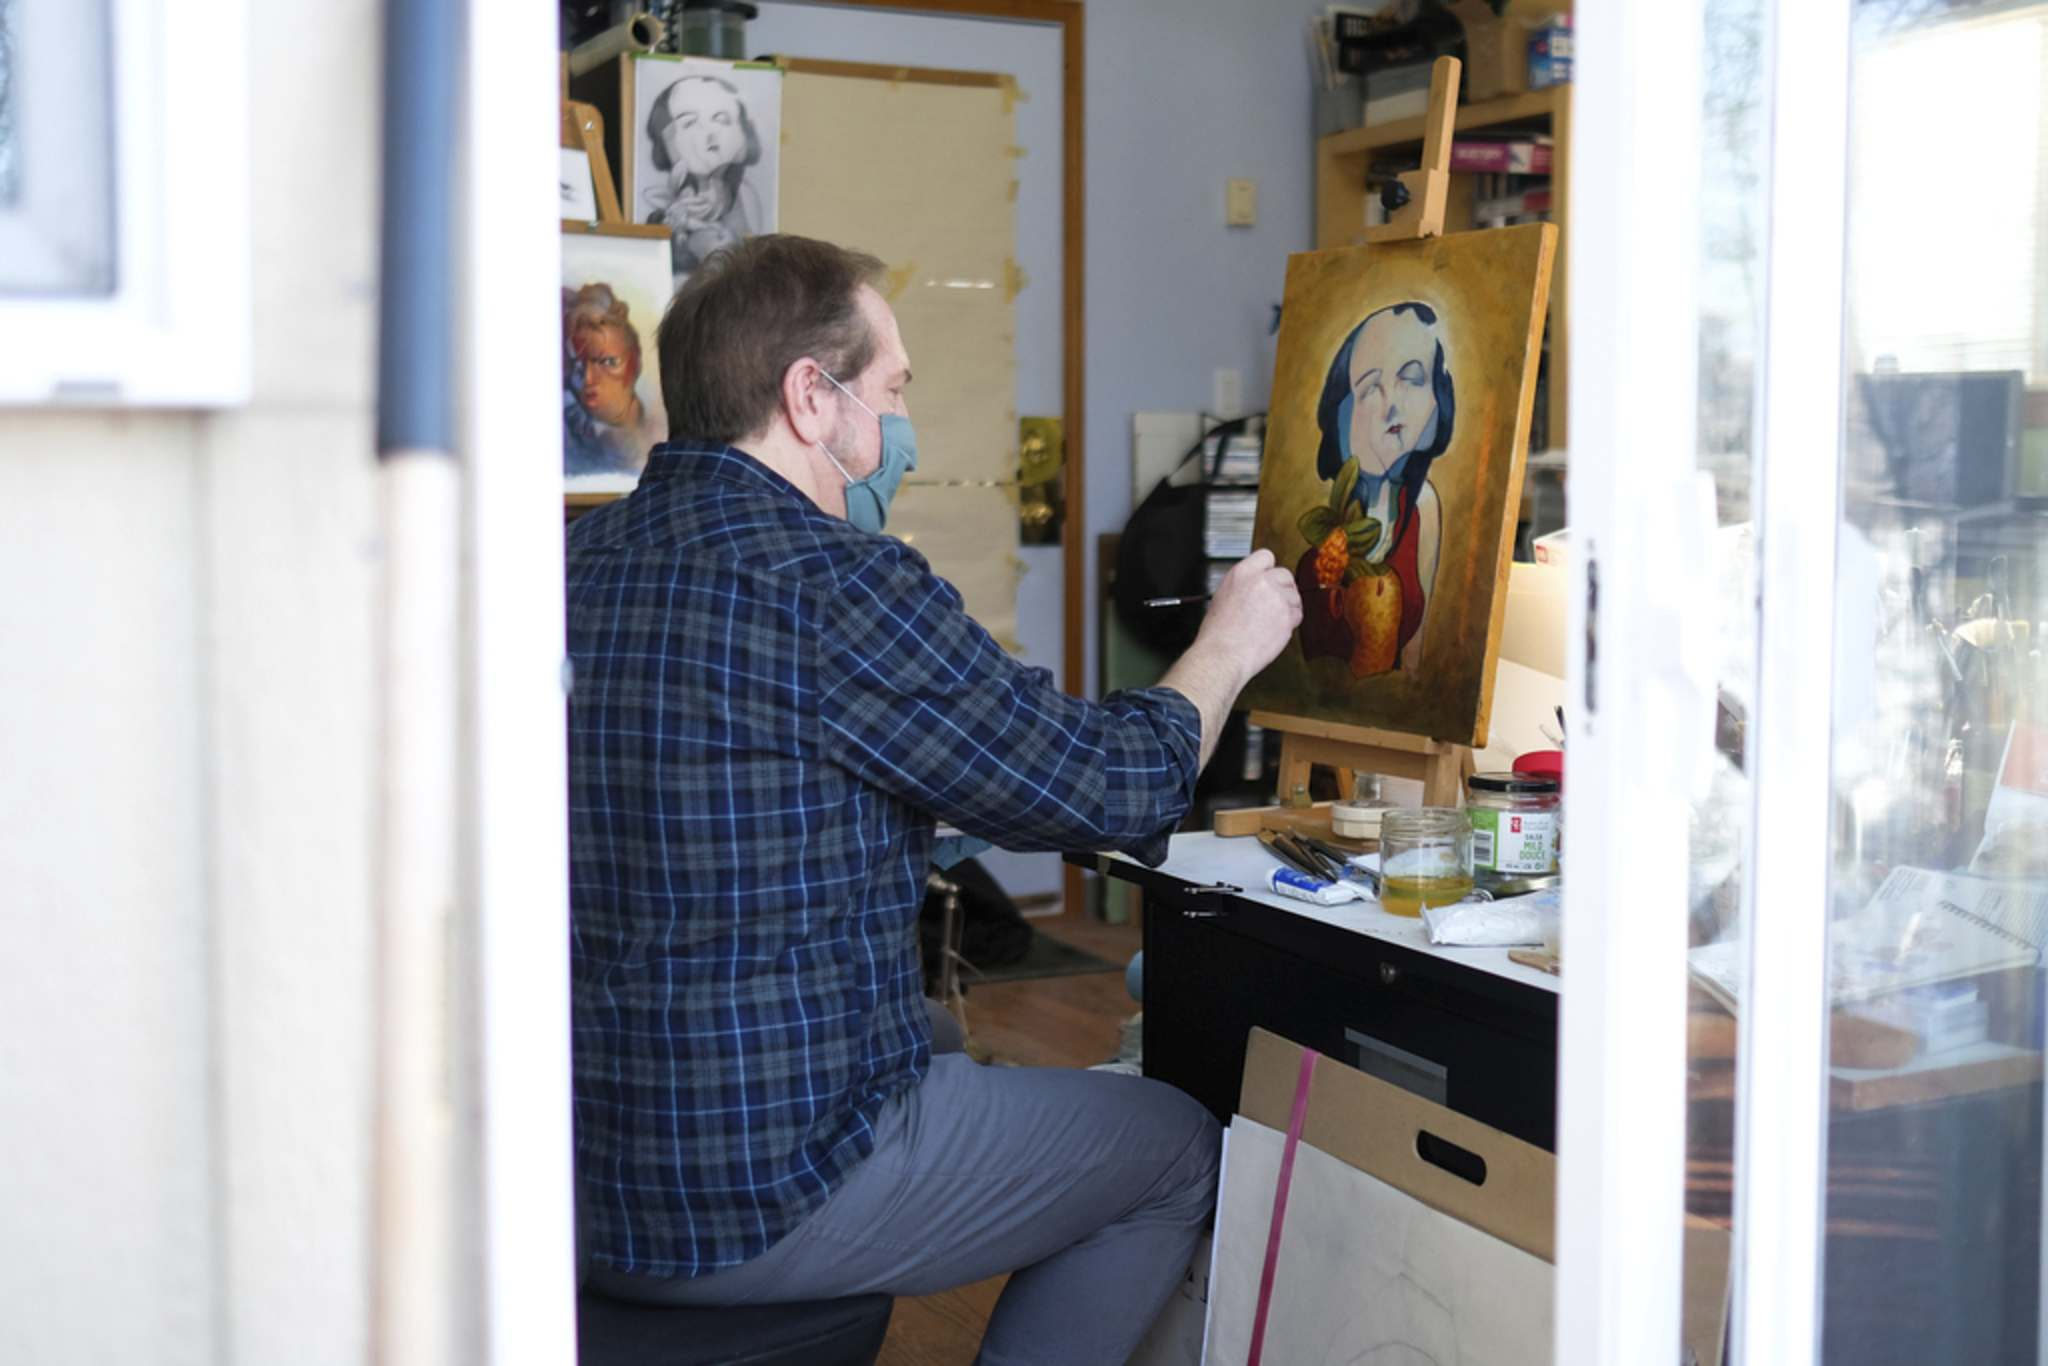 Chris Chuckry, a Winnipeg-based artist who works with many different mediums. works on an oil painting in his home studio. (Daniel Crump / Winnipeg Free Press)